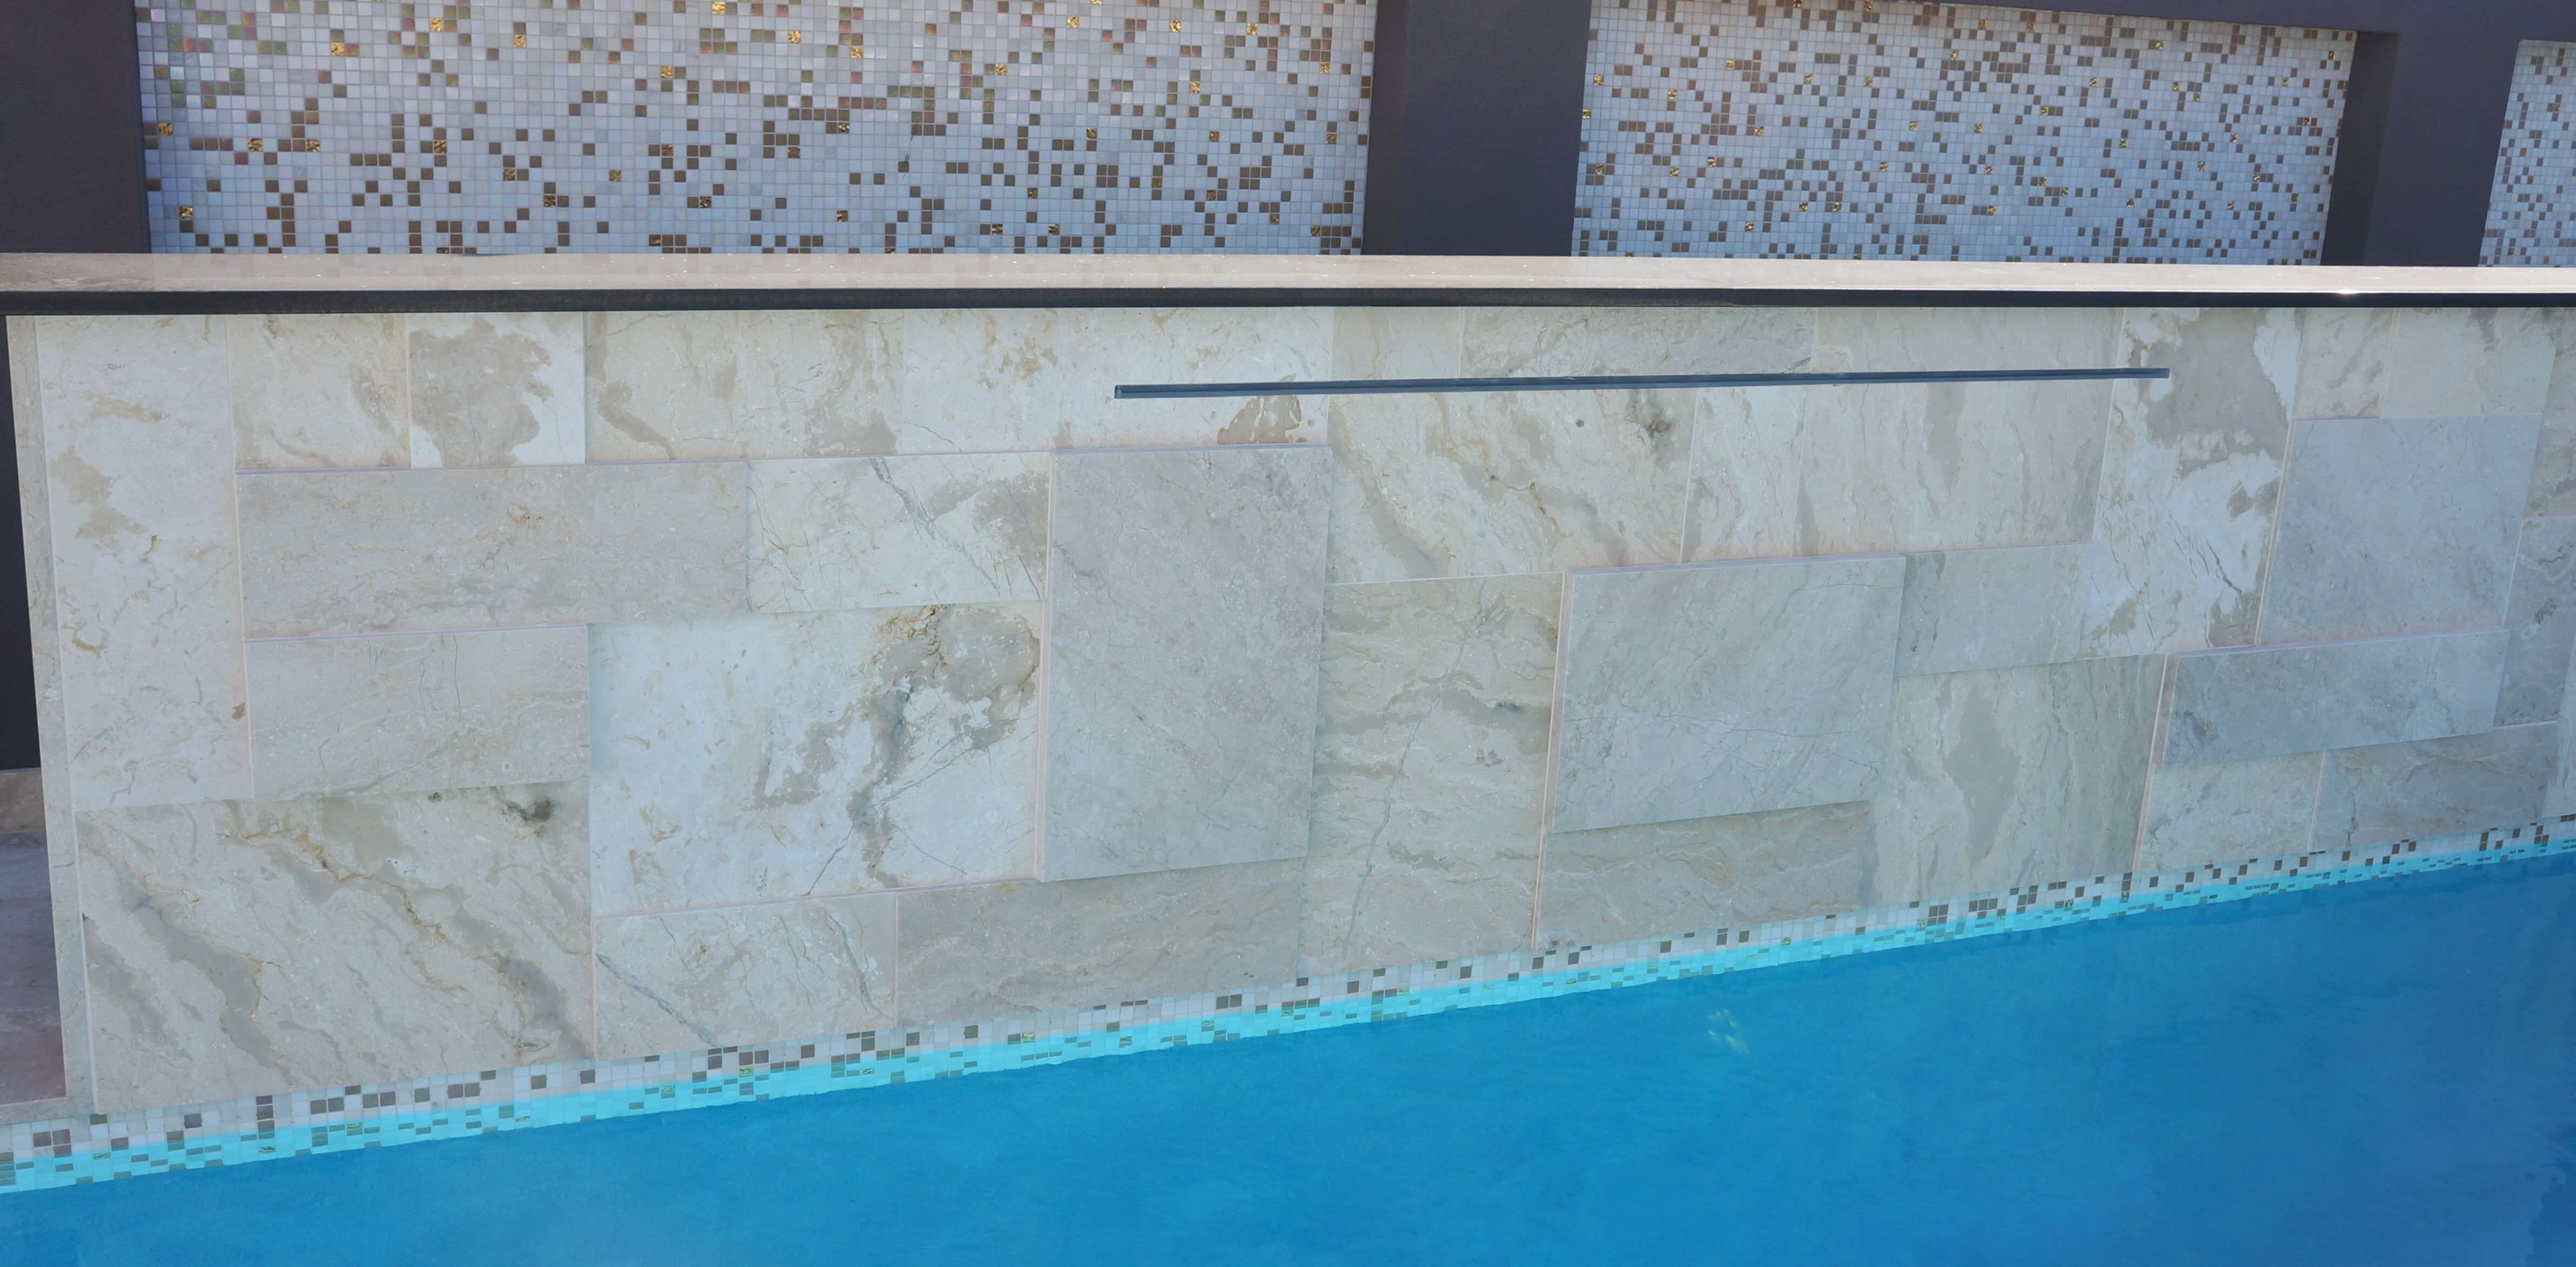 Swimming pool floor and wall design using Gundy marble natural stone tiles